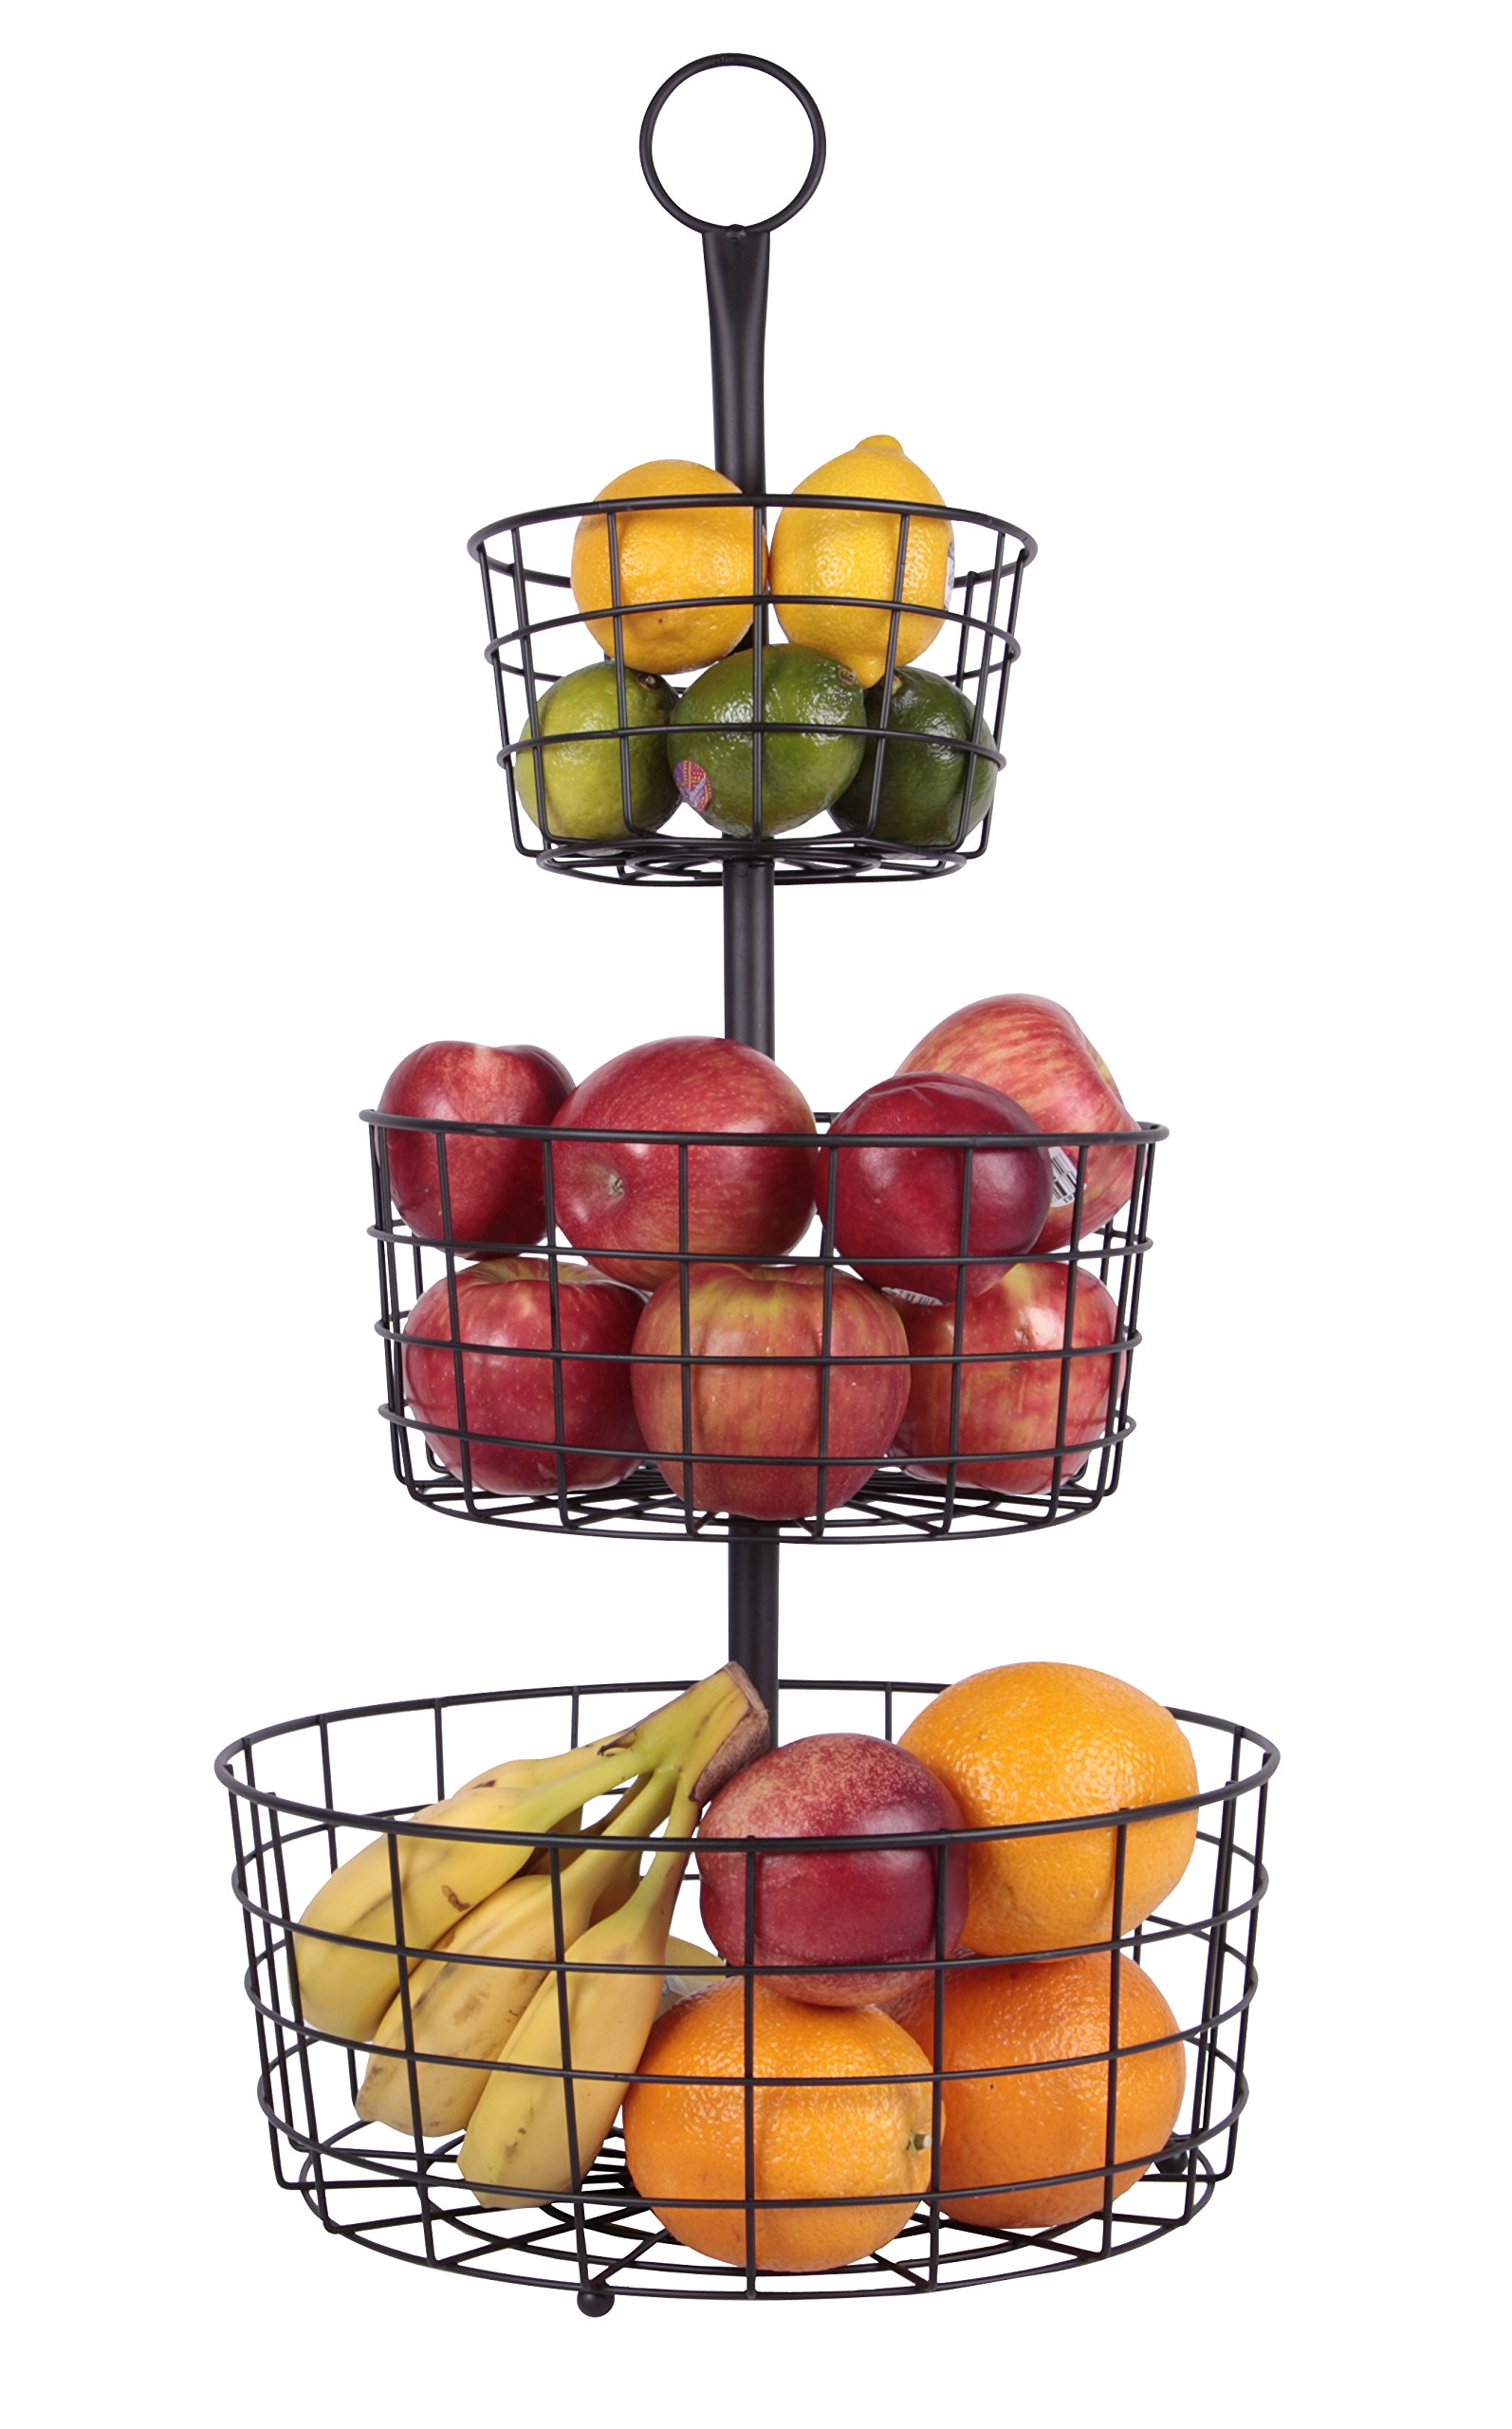 JMiles UH-FB205 2 or 3 Tier Decorative Heavy Duty Wire Fruit Basket Countertop Stand (Black)